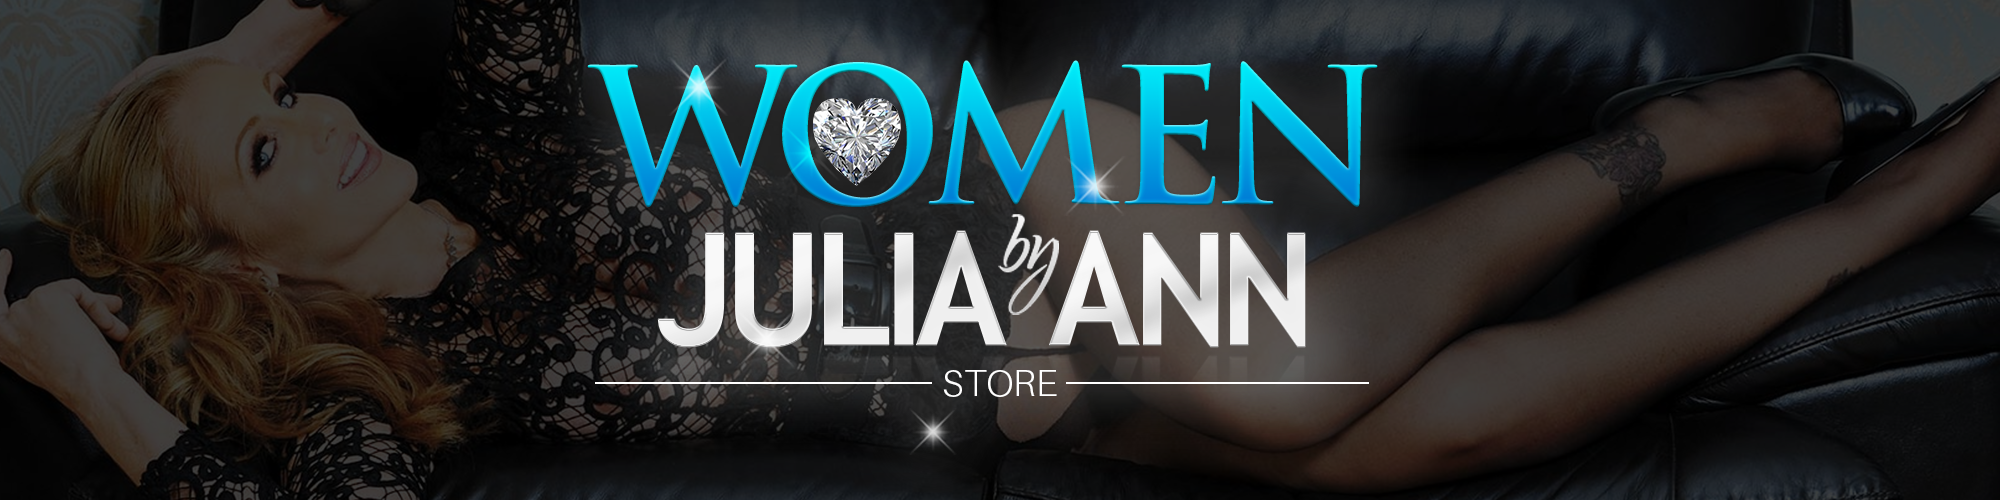 Women By Julia Ann  DVD, sex toy and Streaming Porn Video on Demand